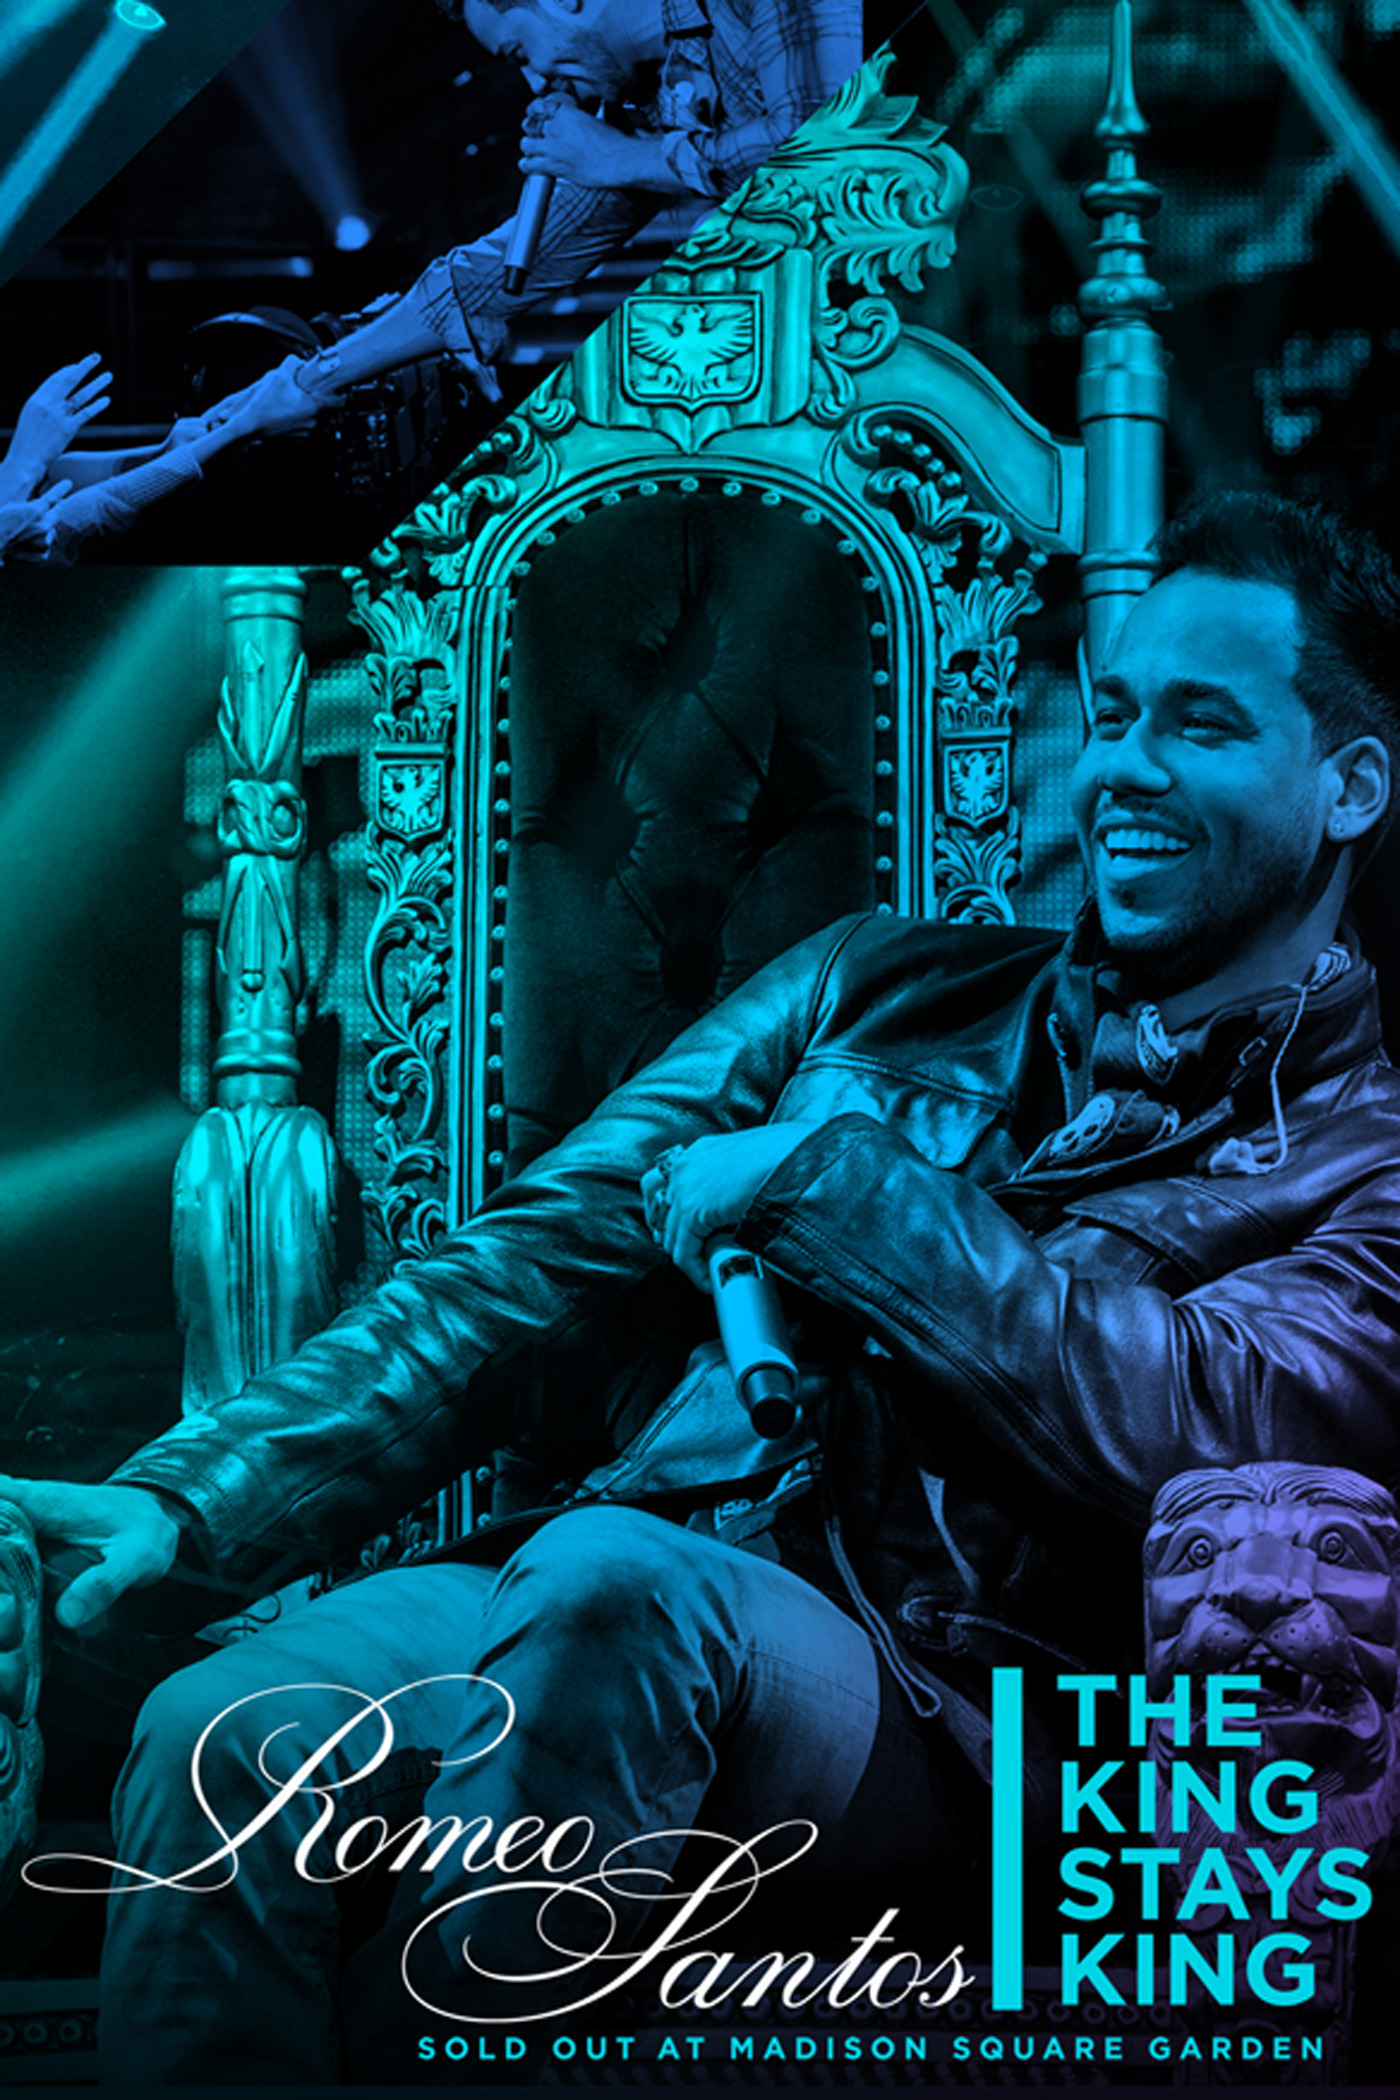 Romeo Santos: The King Stays King - Sold out at Madison Square Garden